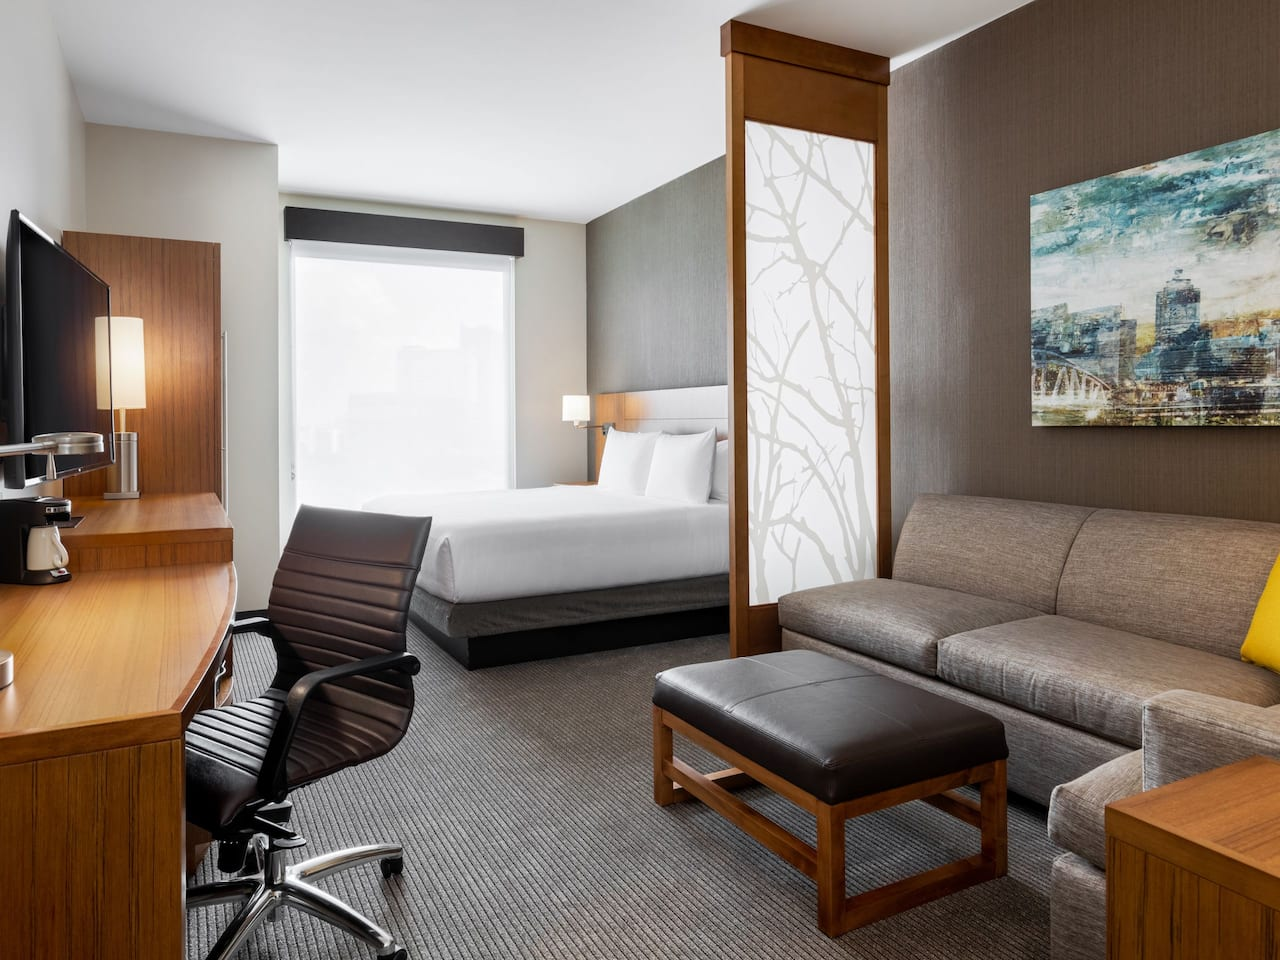 Hotels Downtown Atlanta with King Bed and Pull Out Sofa Bed with a View at Hyatt Place Atlanta/Centennial Park